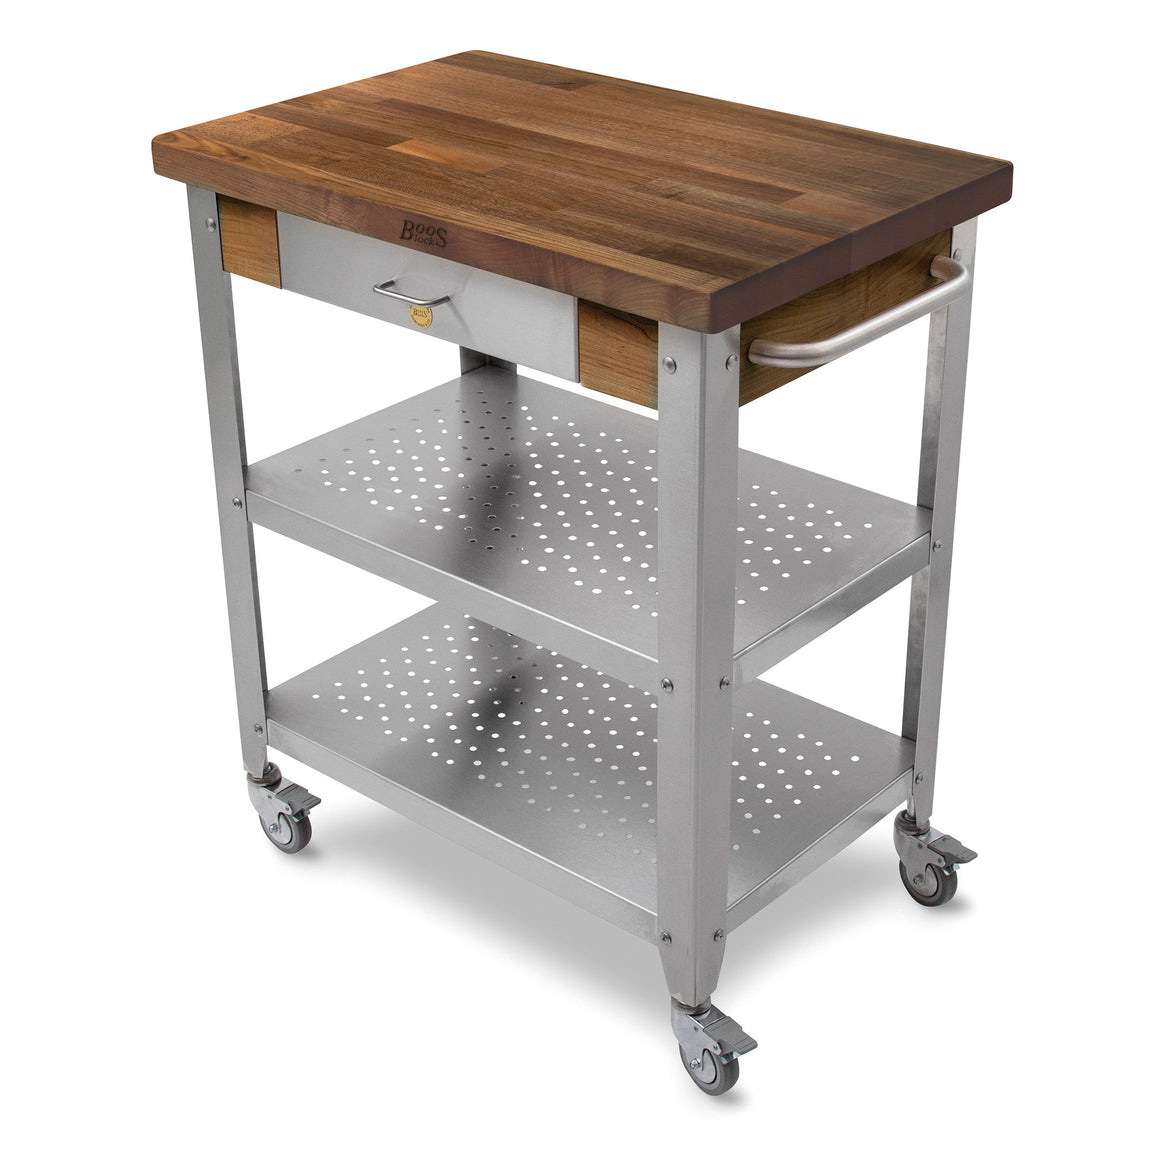 "Walnut Cucina Elegante Cart - 30-3/4"" x 20"" - Stainless Steel Shelves and Drawer Face Panel"